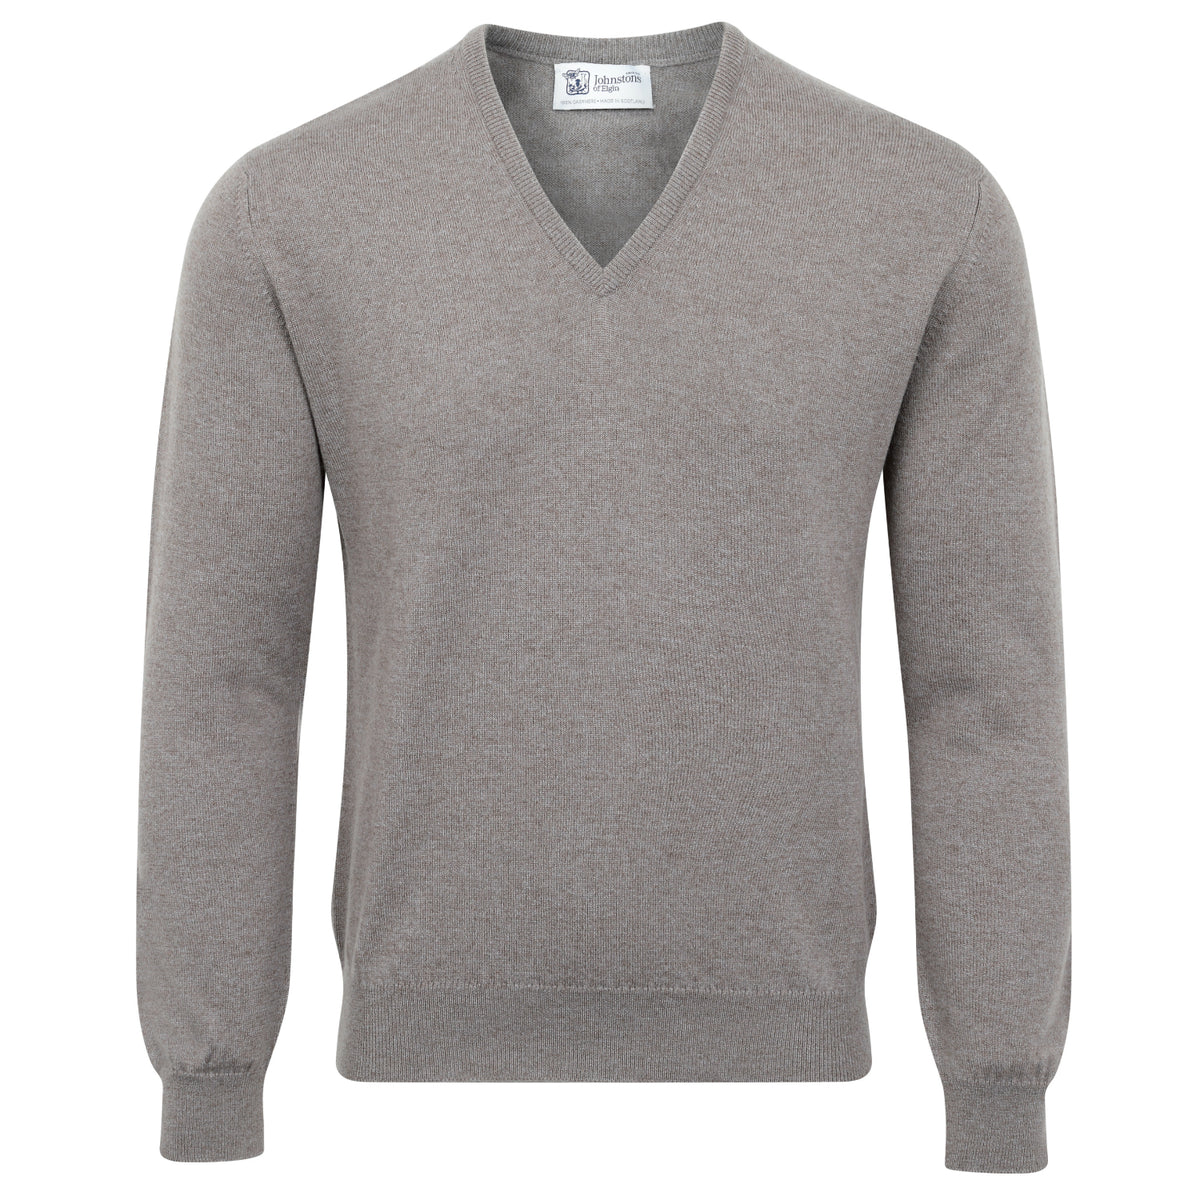 Johnstons of Elgin | Mens 2-Ply Cashmere V Neck | Sparrow Beige | Shop now at The Cashmere Choice | London